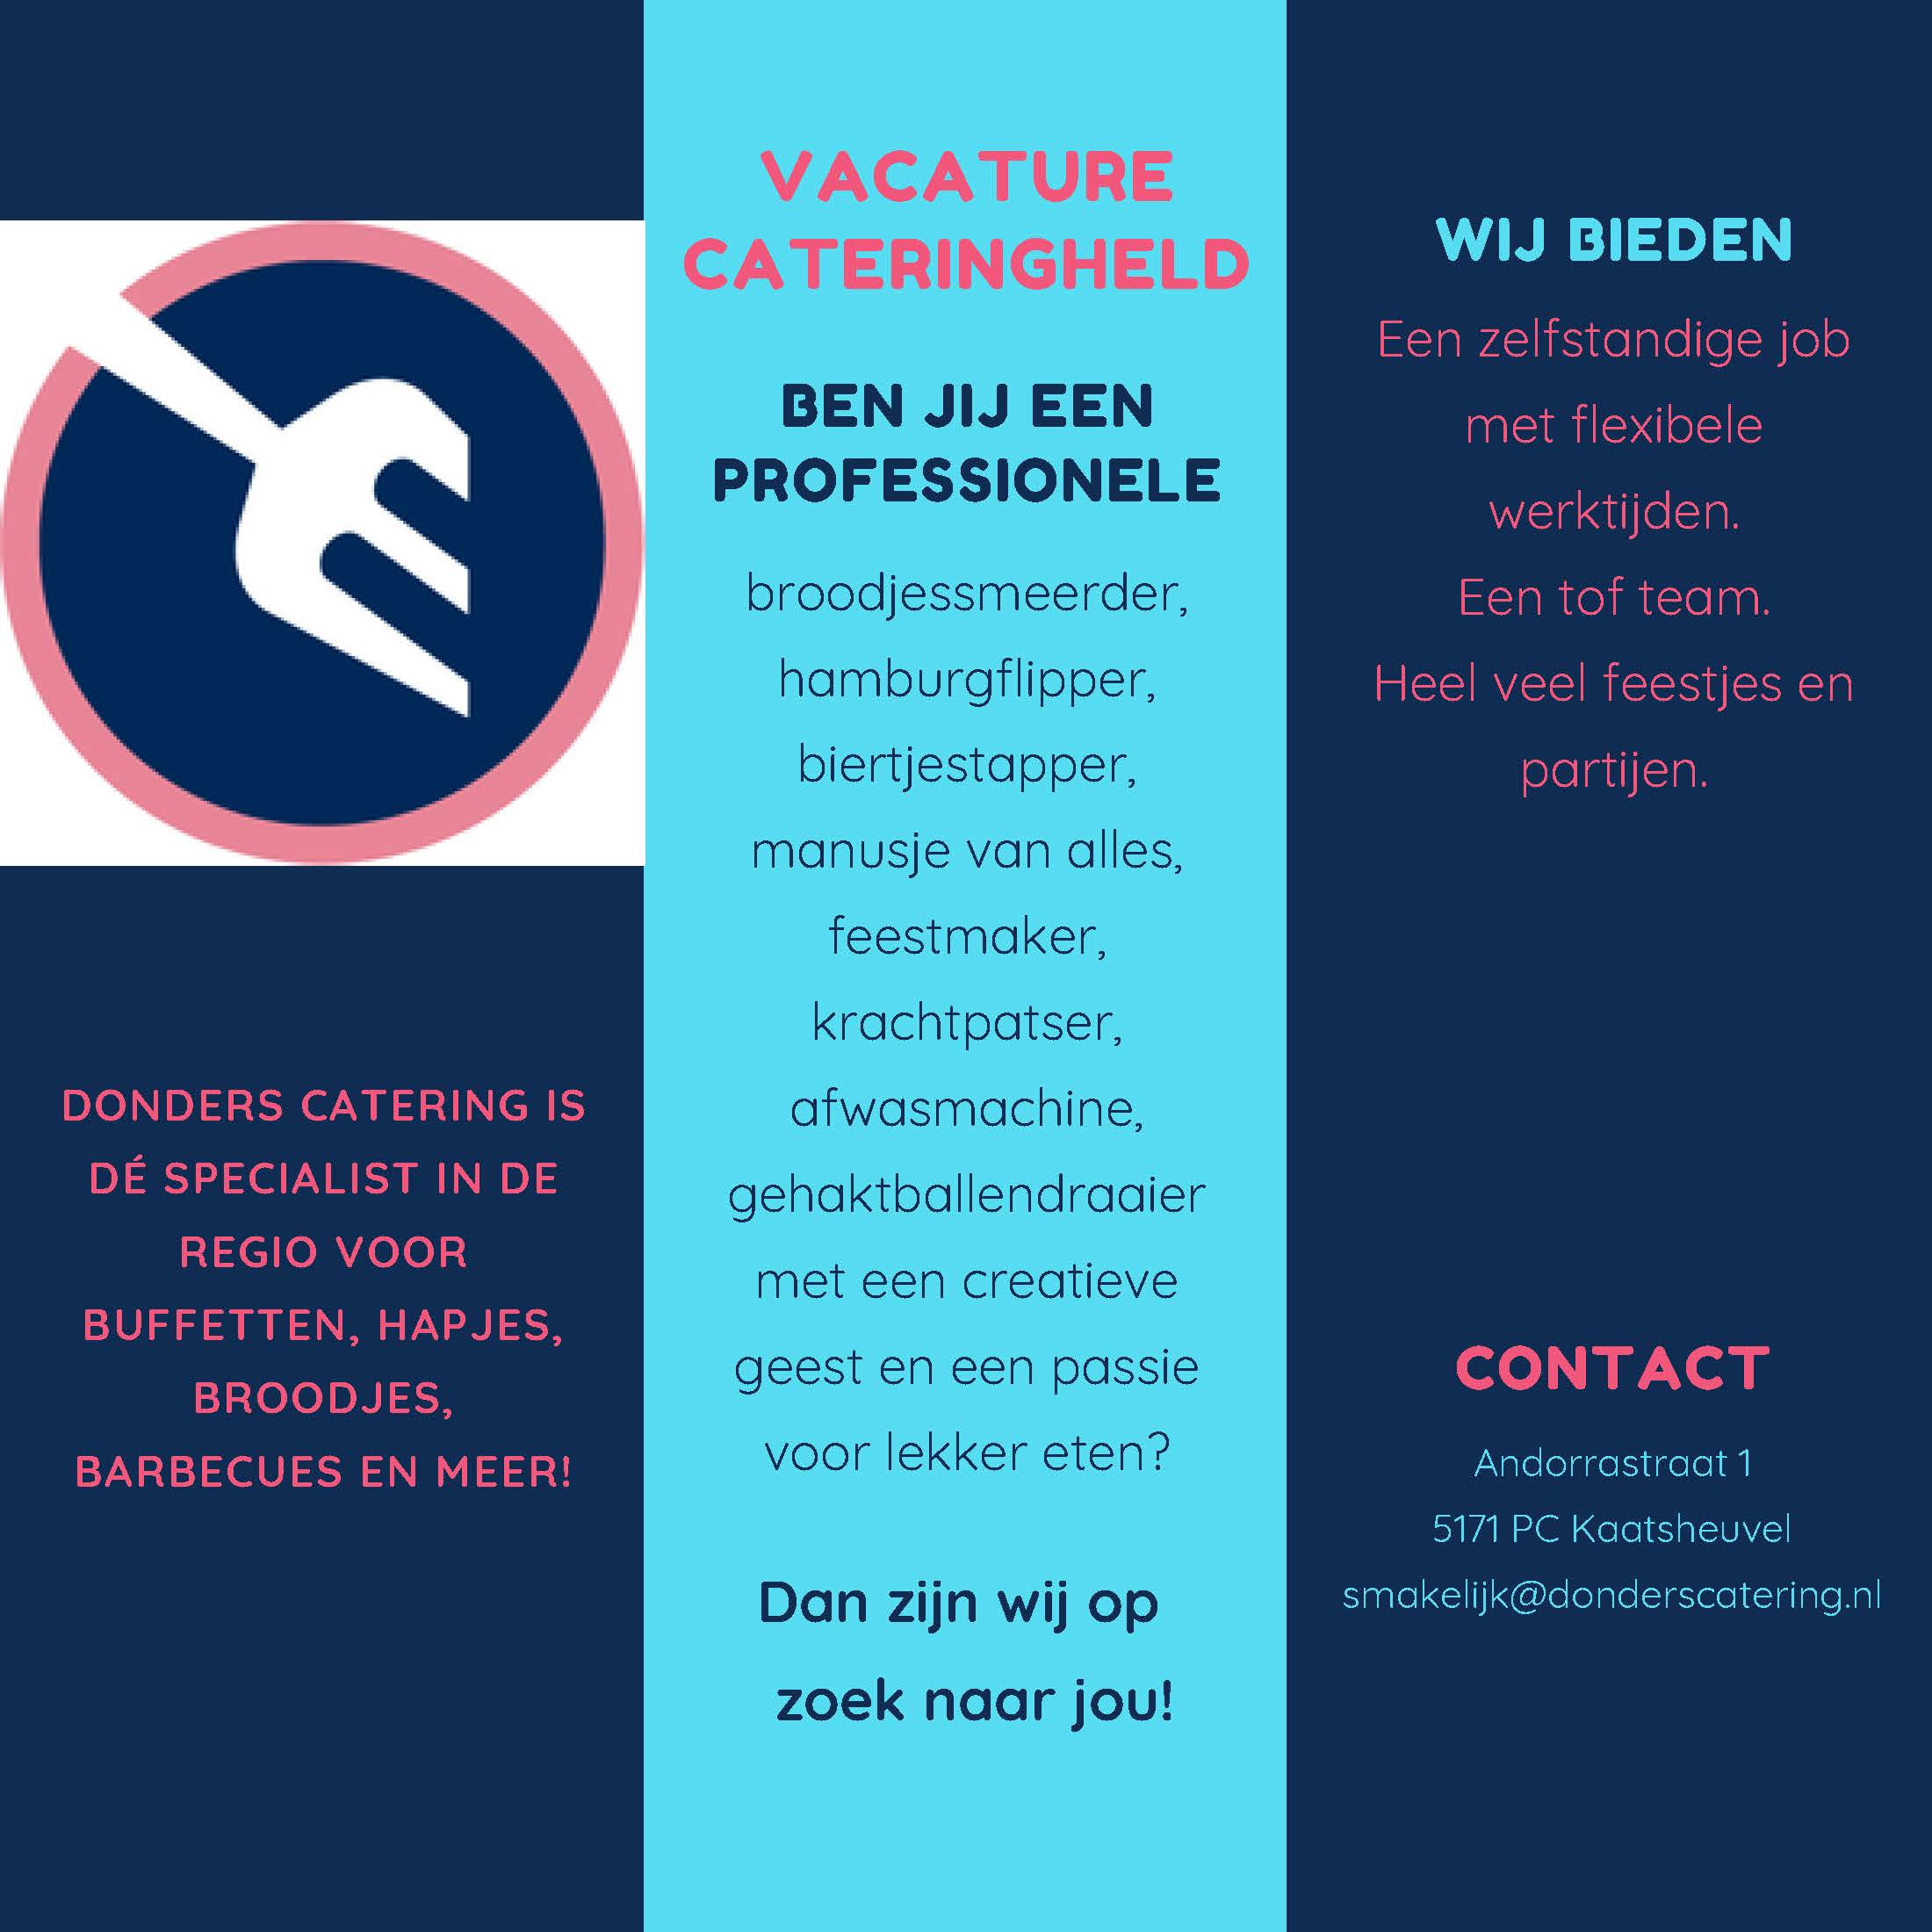 Vacature Donders Catering